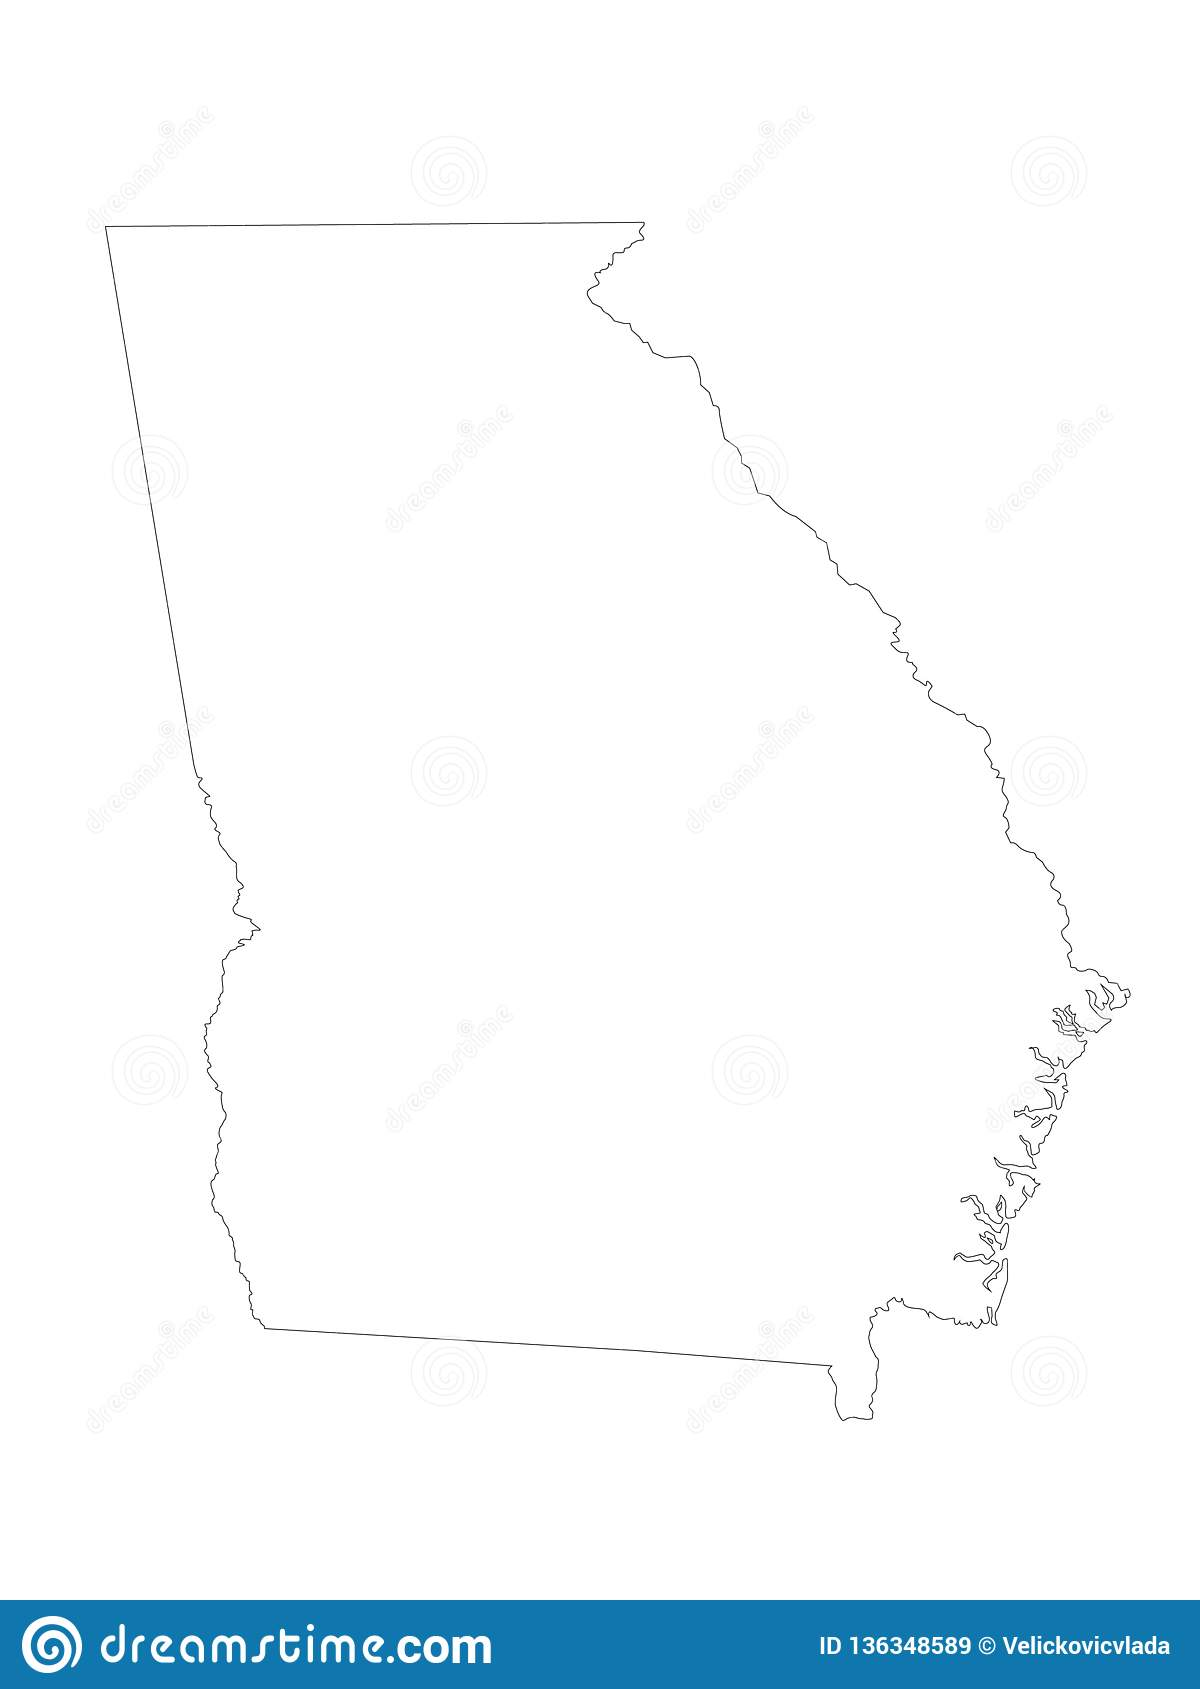 Georgia U. S. State Map - State In The Southeastern United ...